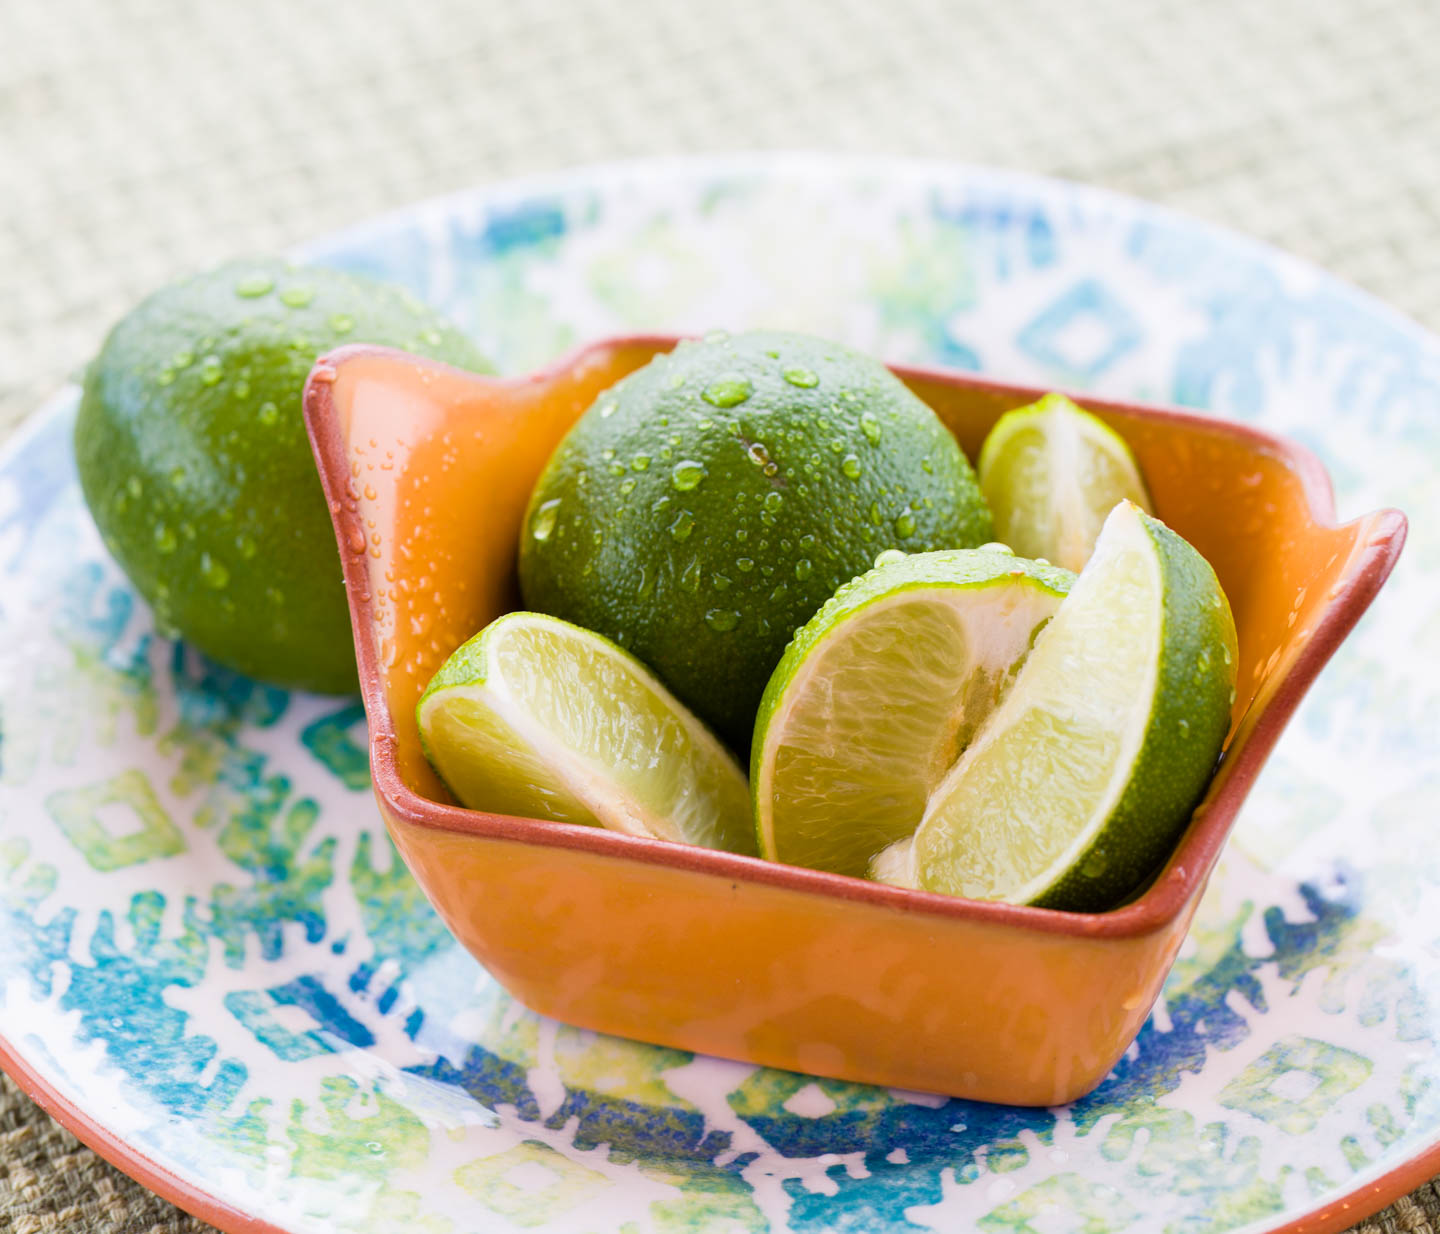 Sliced limes with water drops